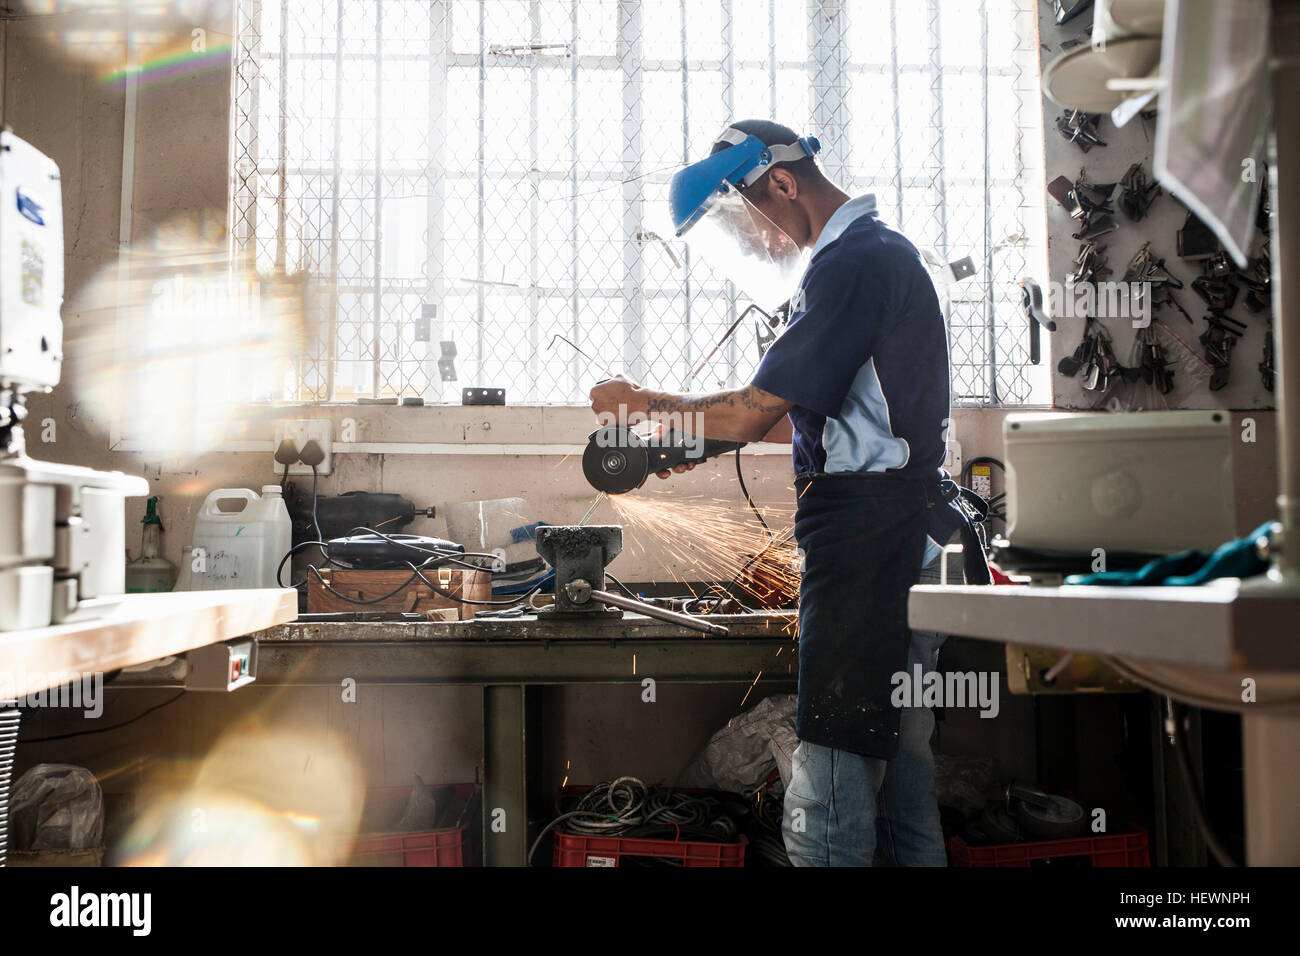 Young man using angle grinder at vice in repair workshop - Stock Image